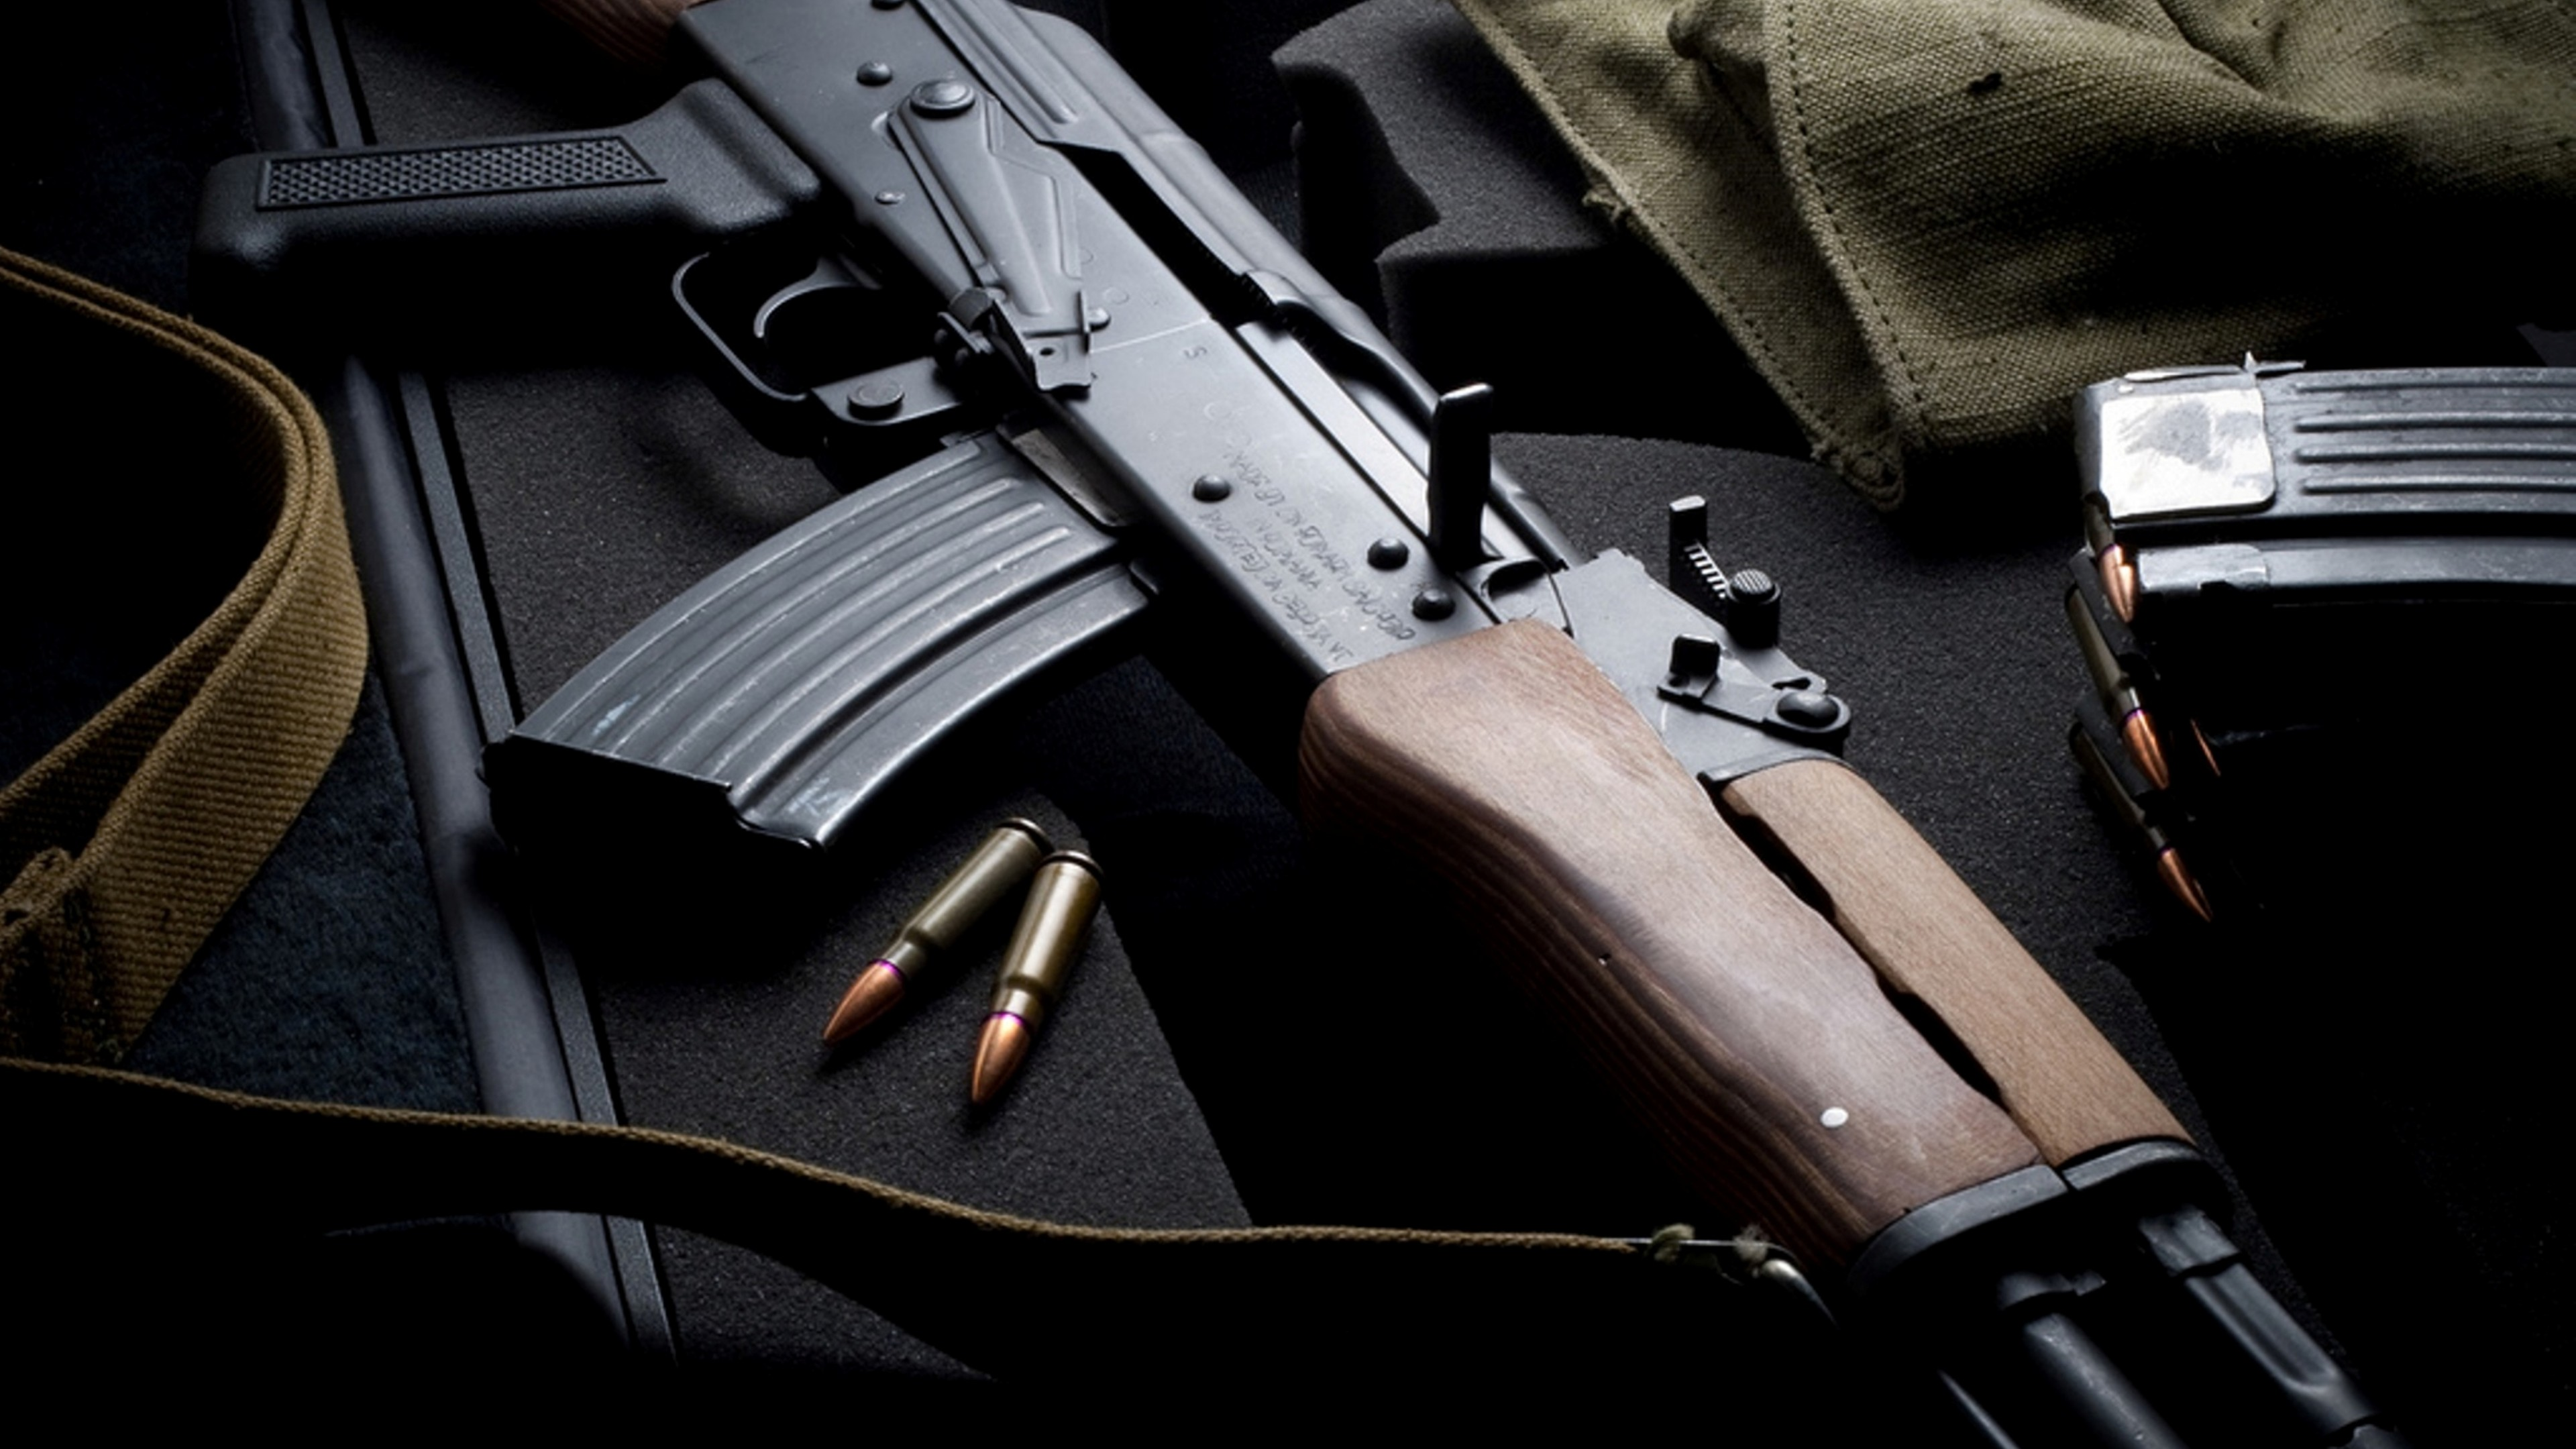 Wallpaper AK 74 Kalashnikov 47 Assault Rifle Russia USSR